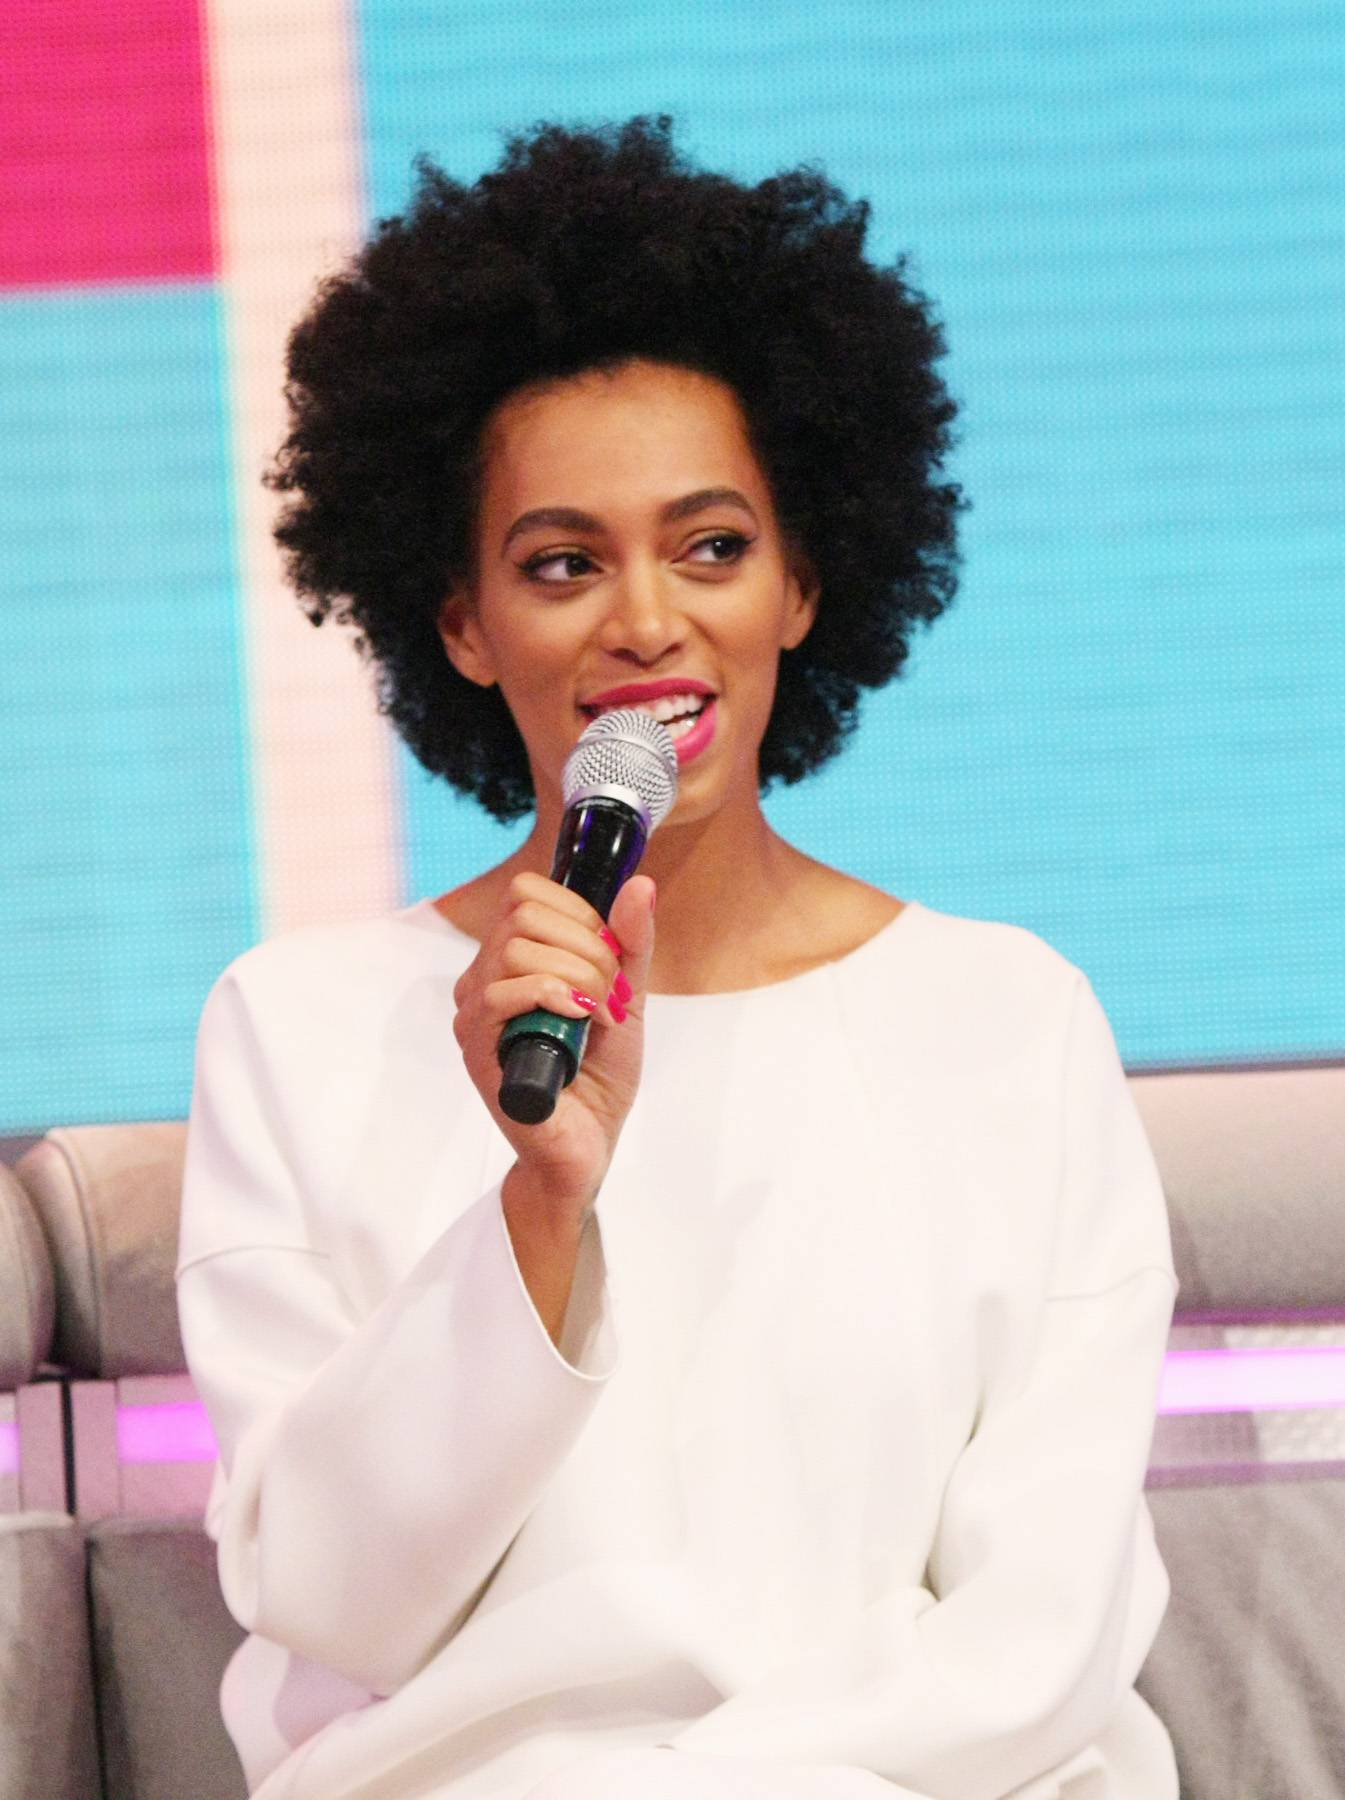 Black Beauty - Solange Knowles chats on the 106 couch with Bow Wow and Keshia Chante.(Photo: Bennett Raglin/BET/Getty Images for BET)